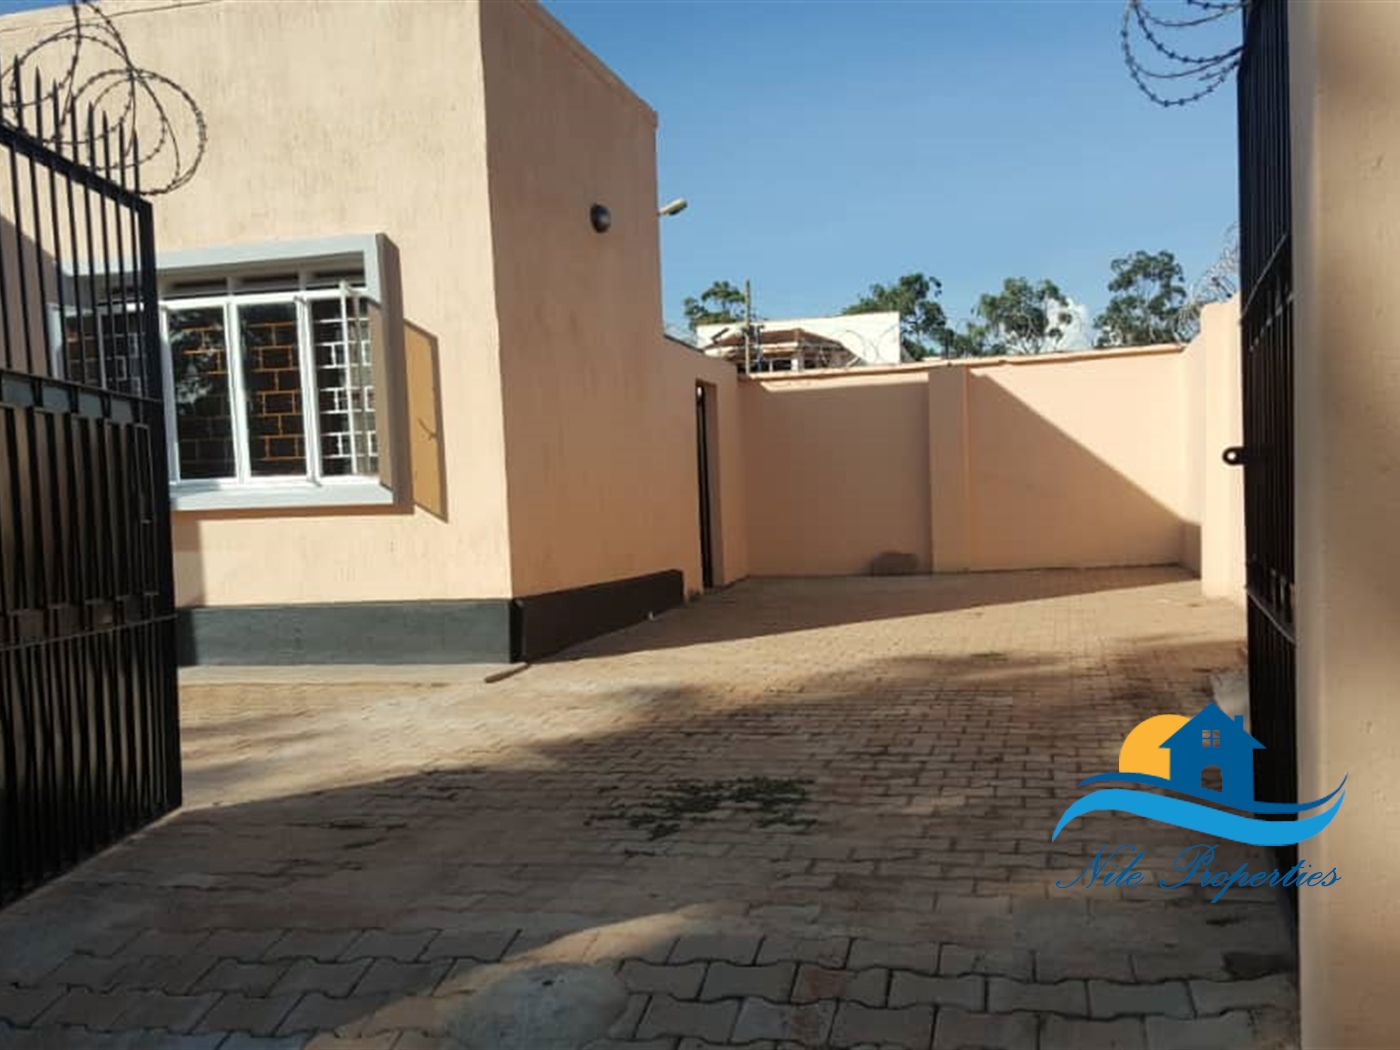 Apartment for rent in Rippon Jinja